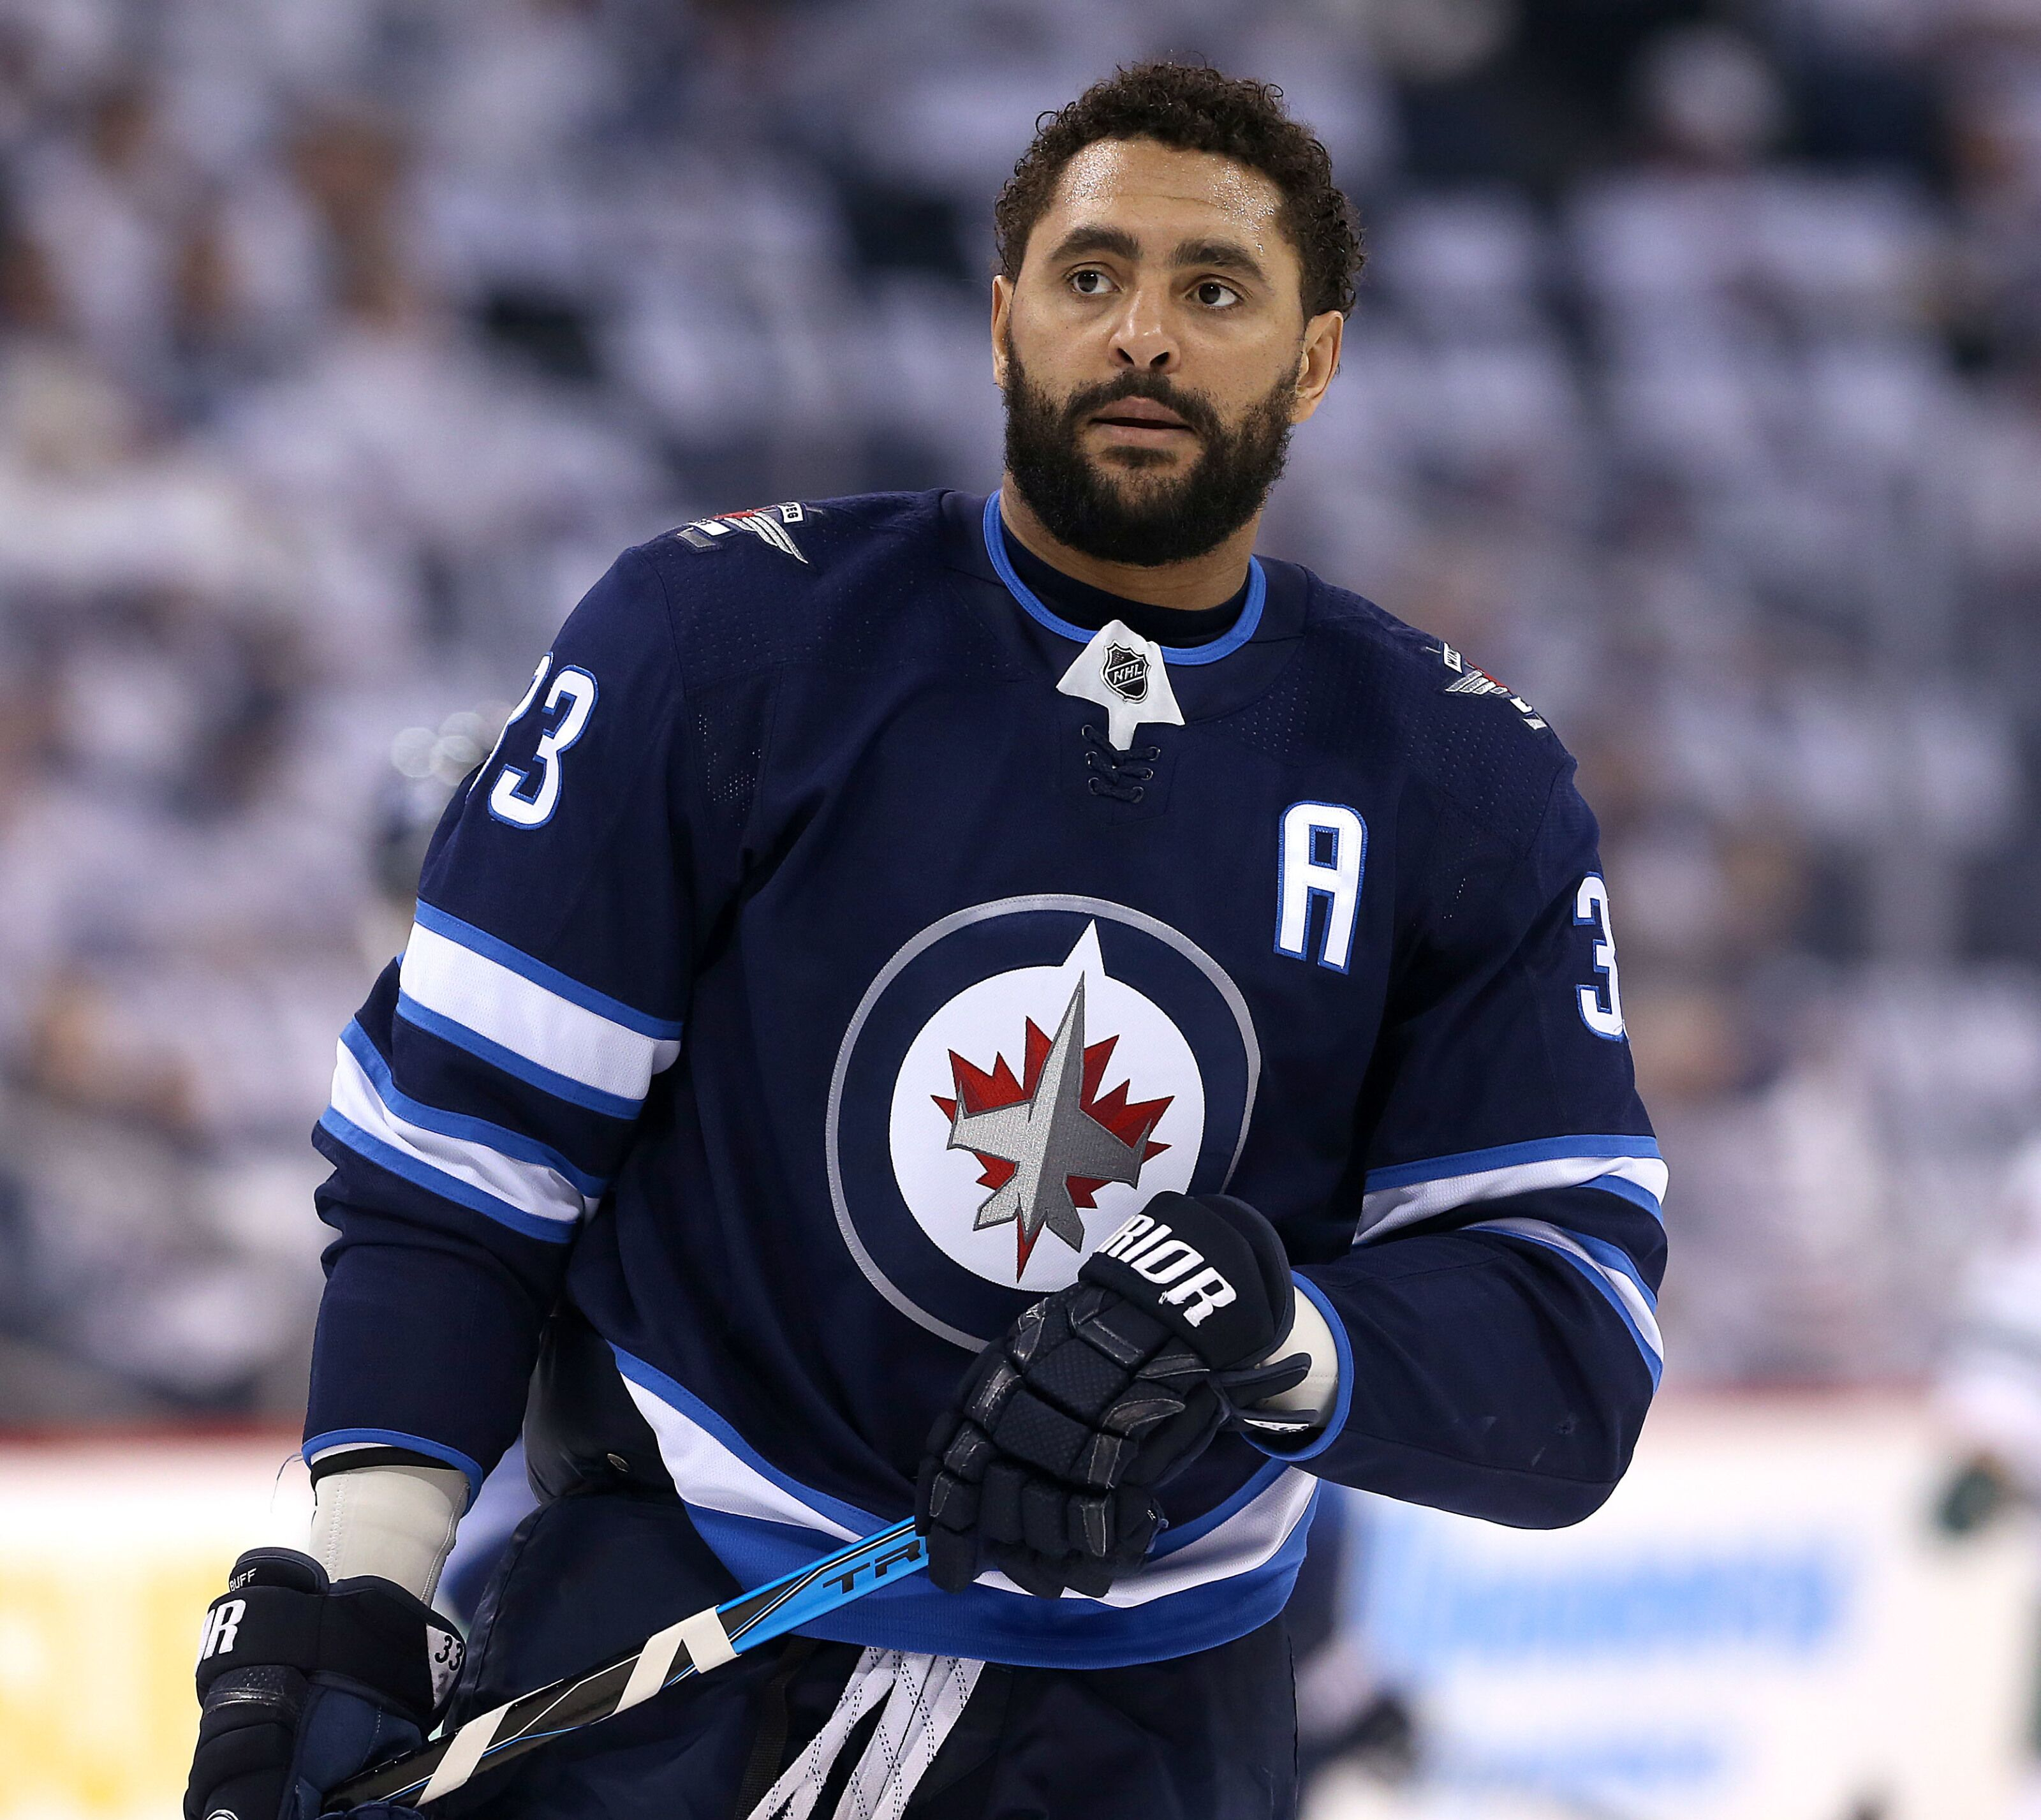 check out d4892 6f538 The Winnipeg Jets Alternate Jersey May Have Leaked, and It's ...